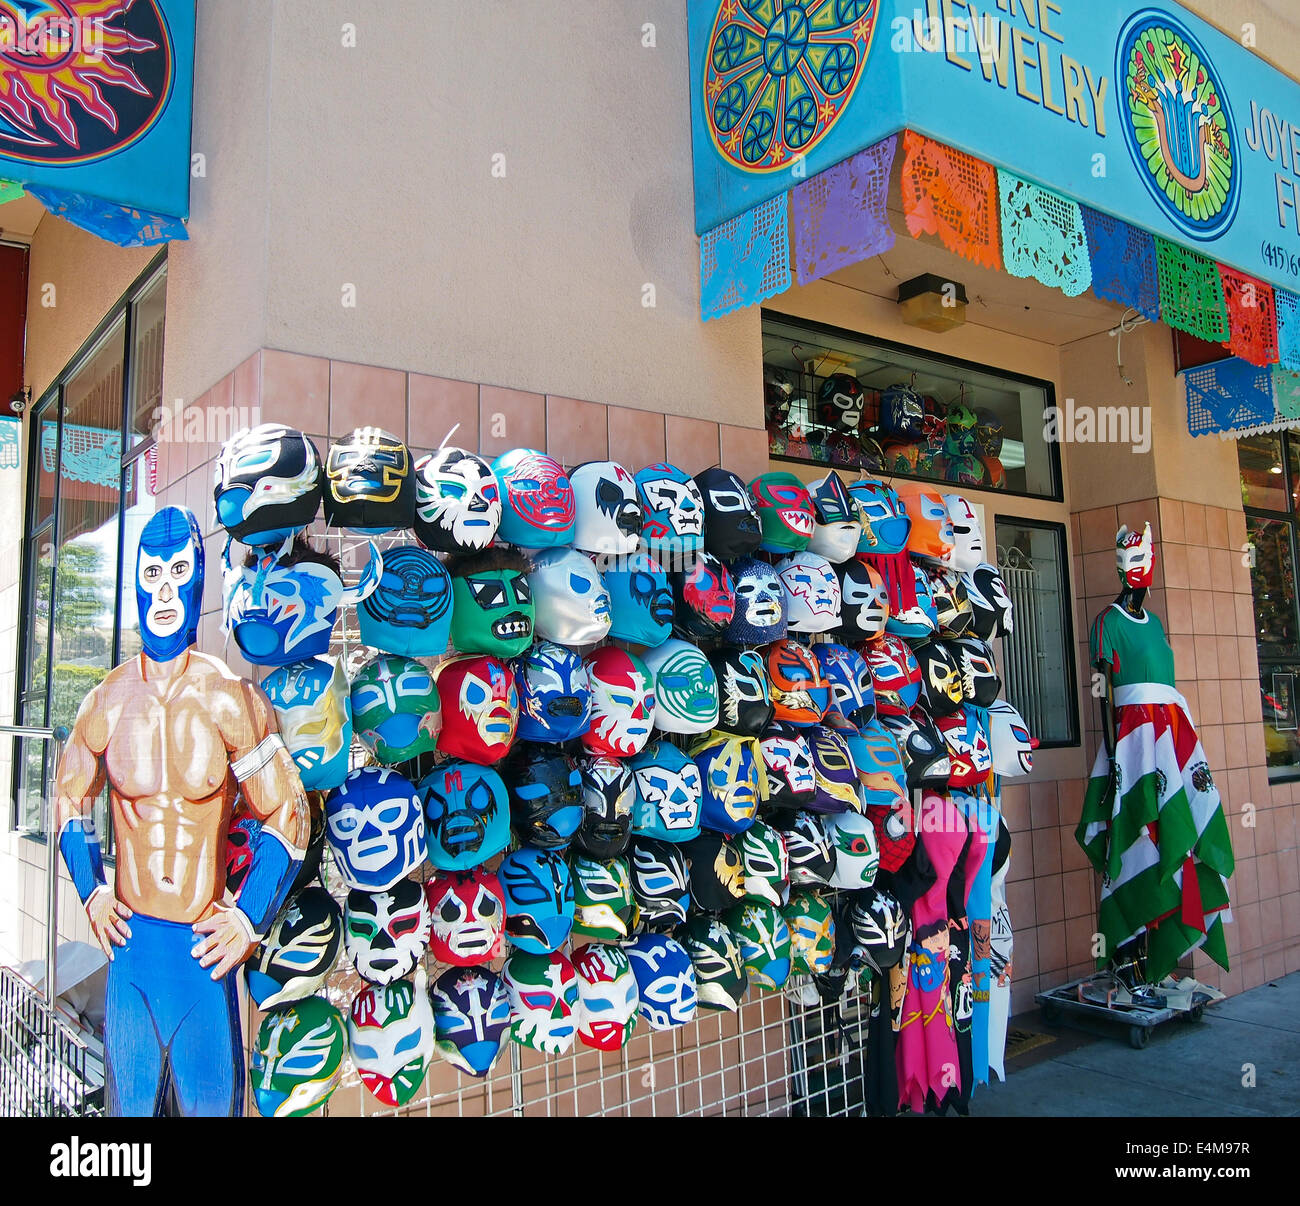 Mexican wrestling masks for sale, Mission District, San Francisco - Stock Image